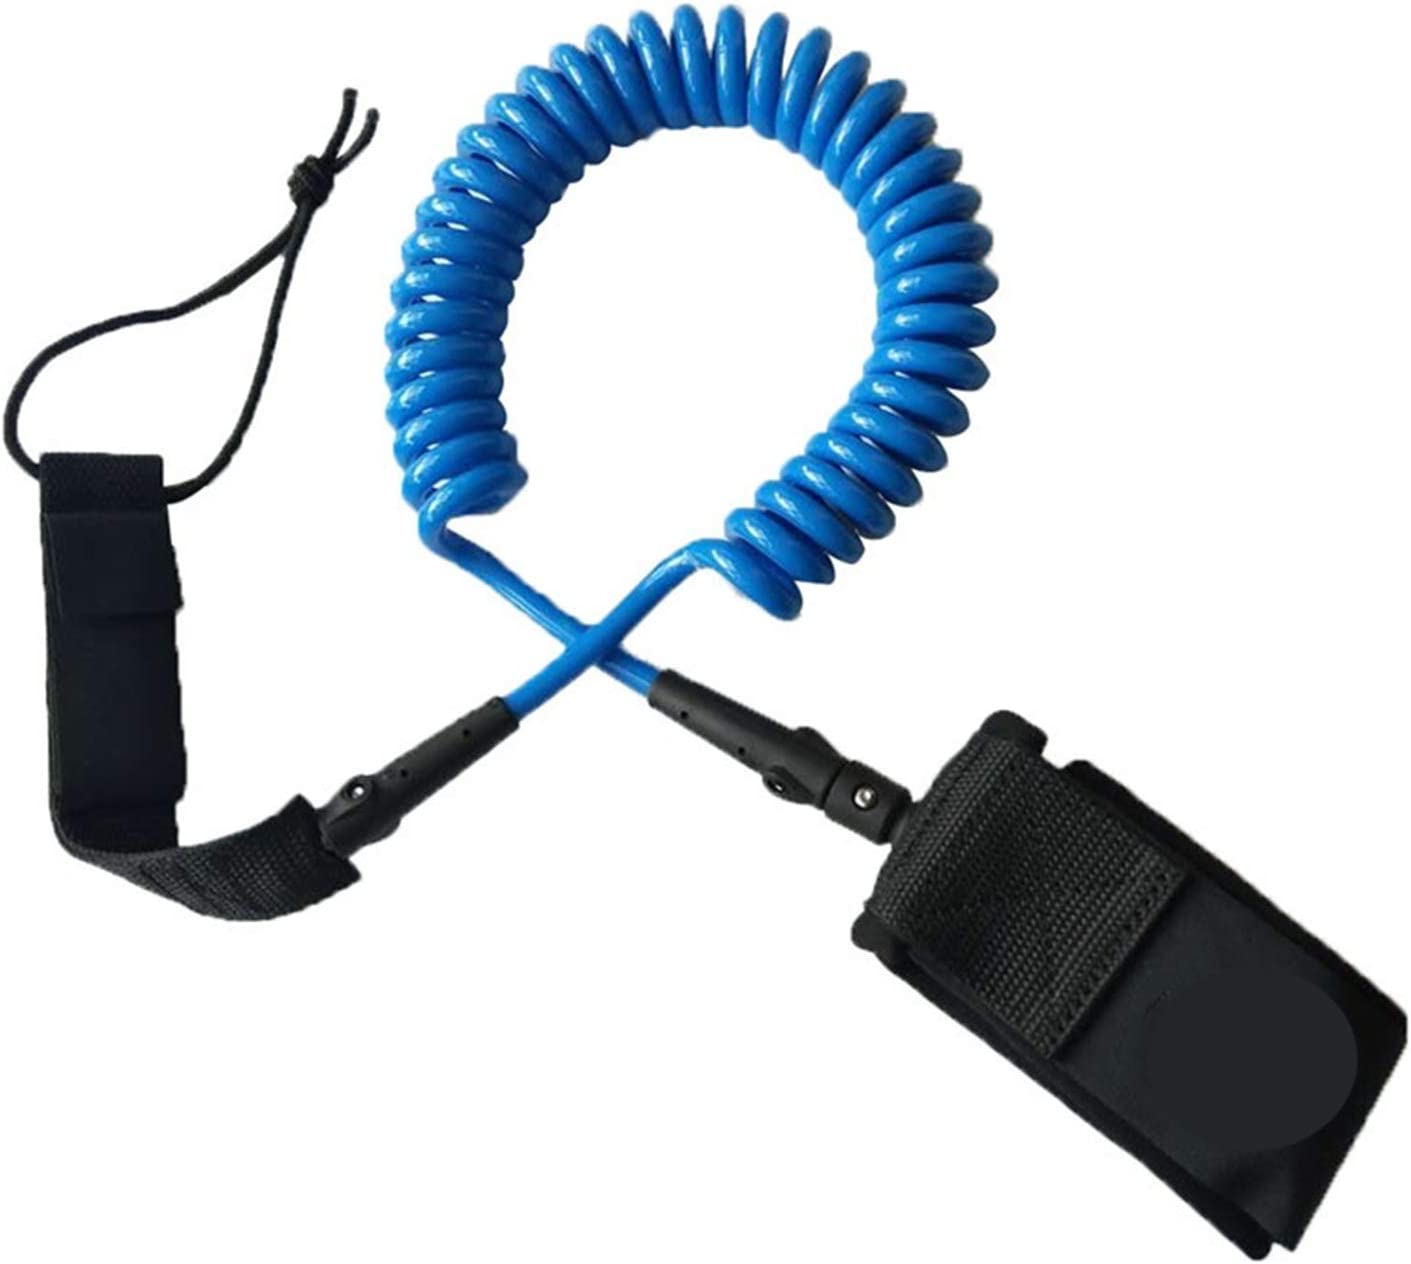 ZHU-CL Surf Sale item Board Leashes 12ft Max 59% OFF Coiled 7mm Leash Paddle Surfboard